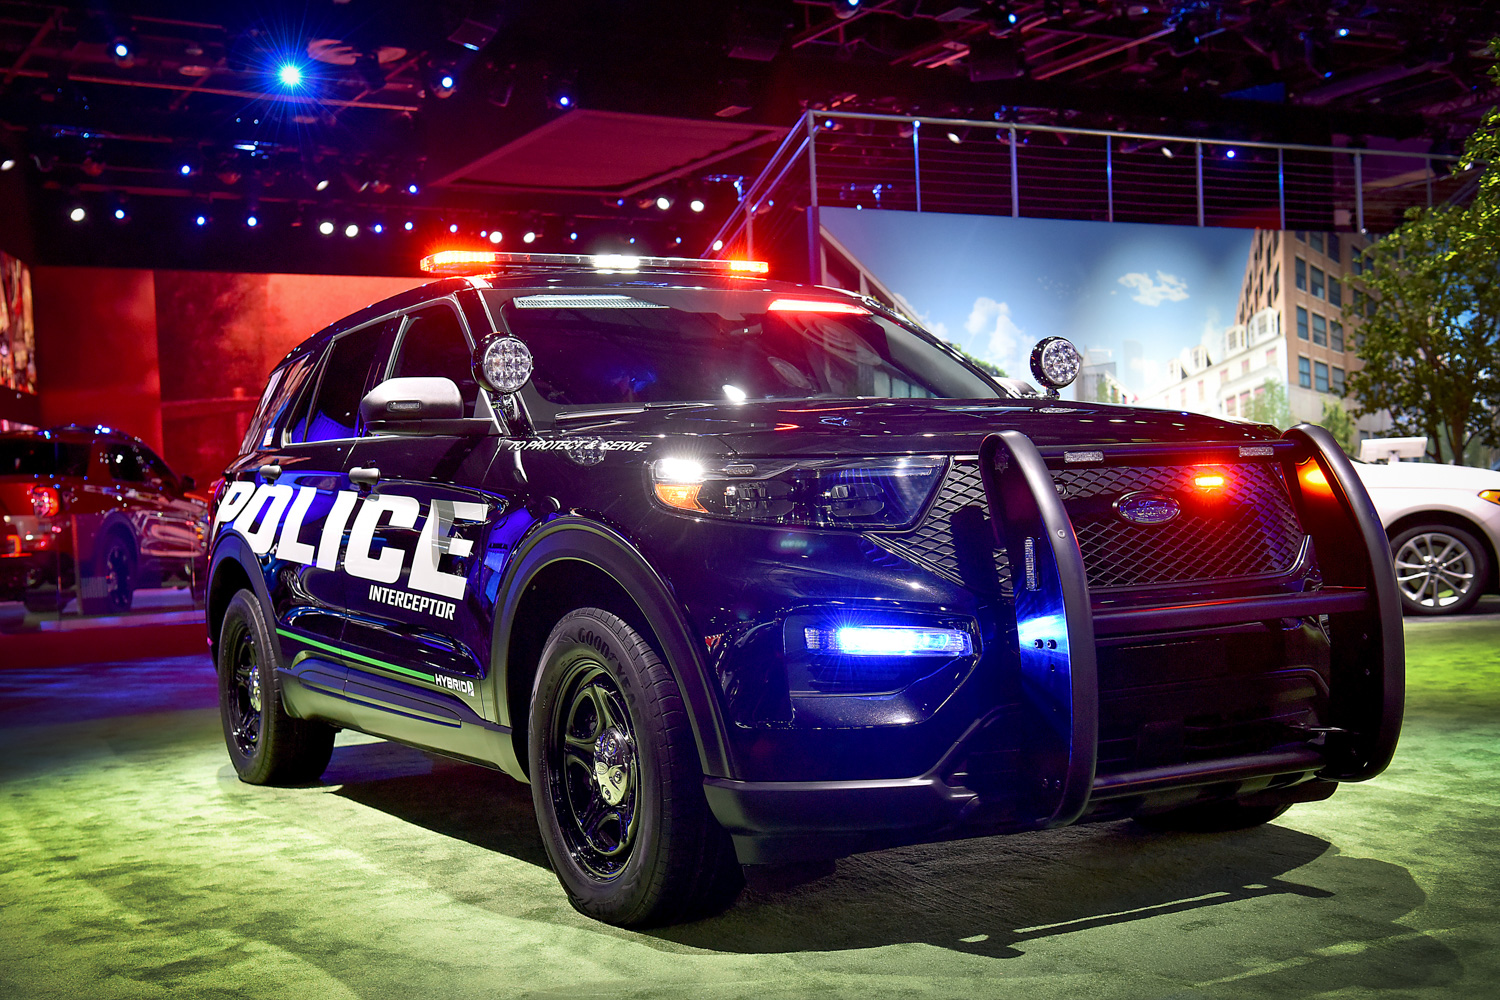 2020 Ford Police Interceptor Utility Hybrid 3/4 front auto show